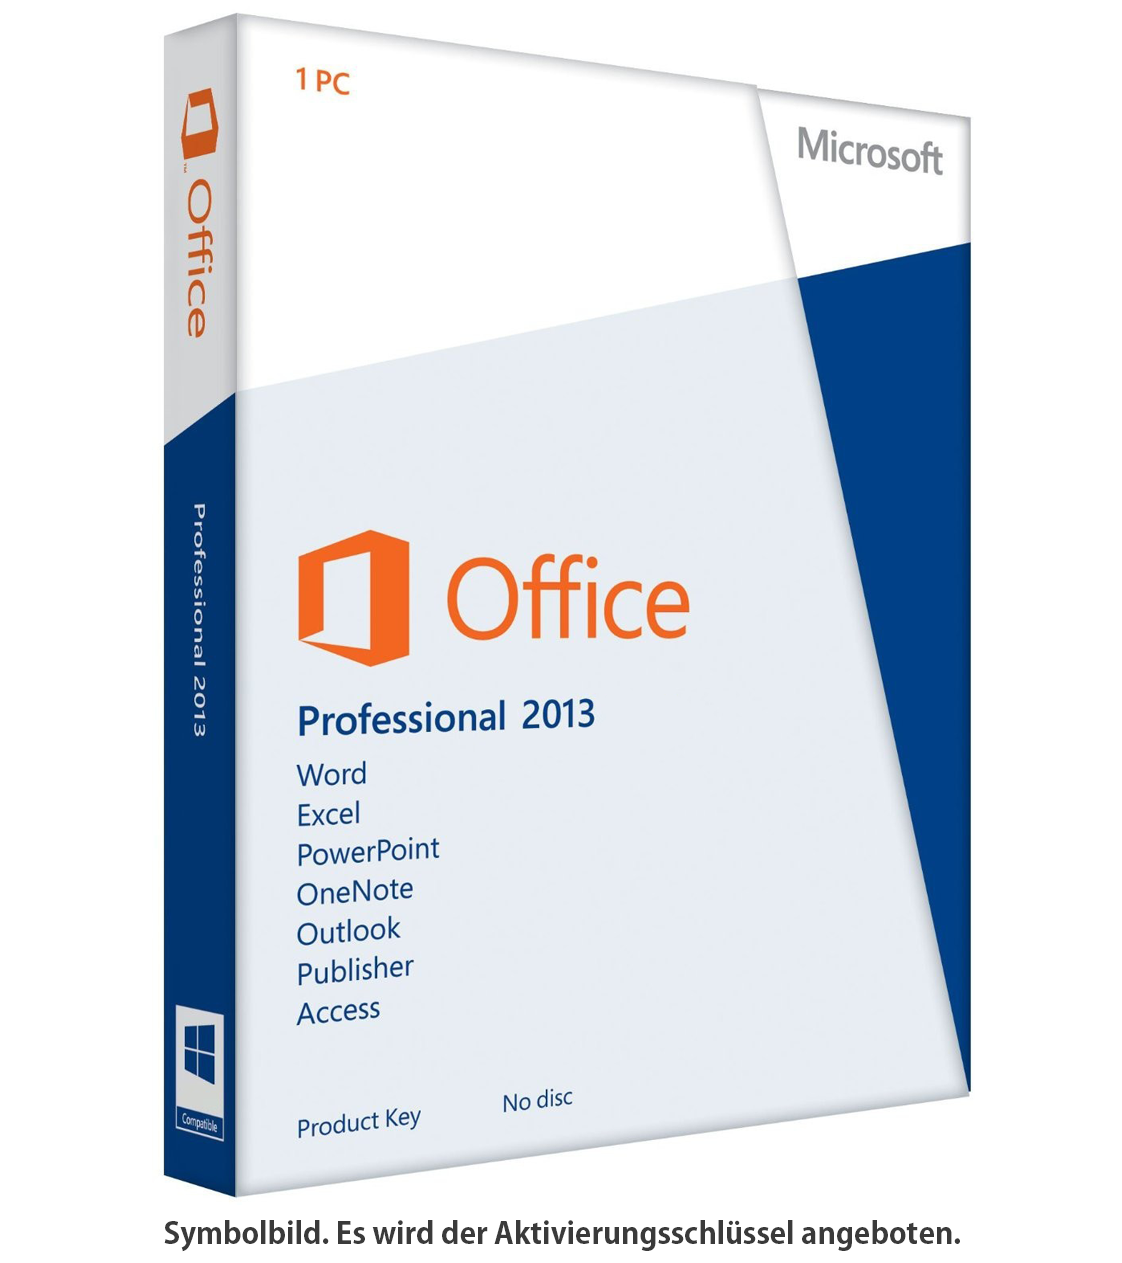 Microsoft Office Professional 2013 günstig kaufen - SoftwareNinja.de